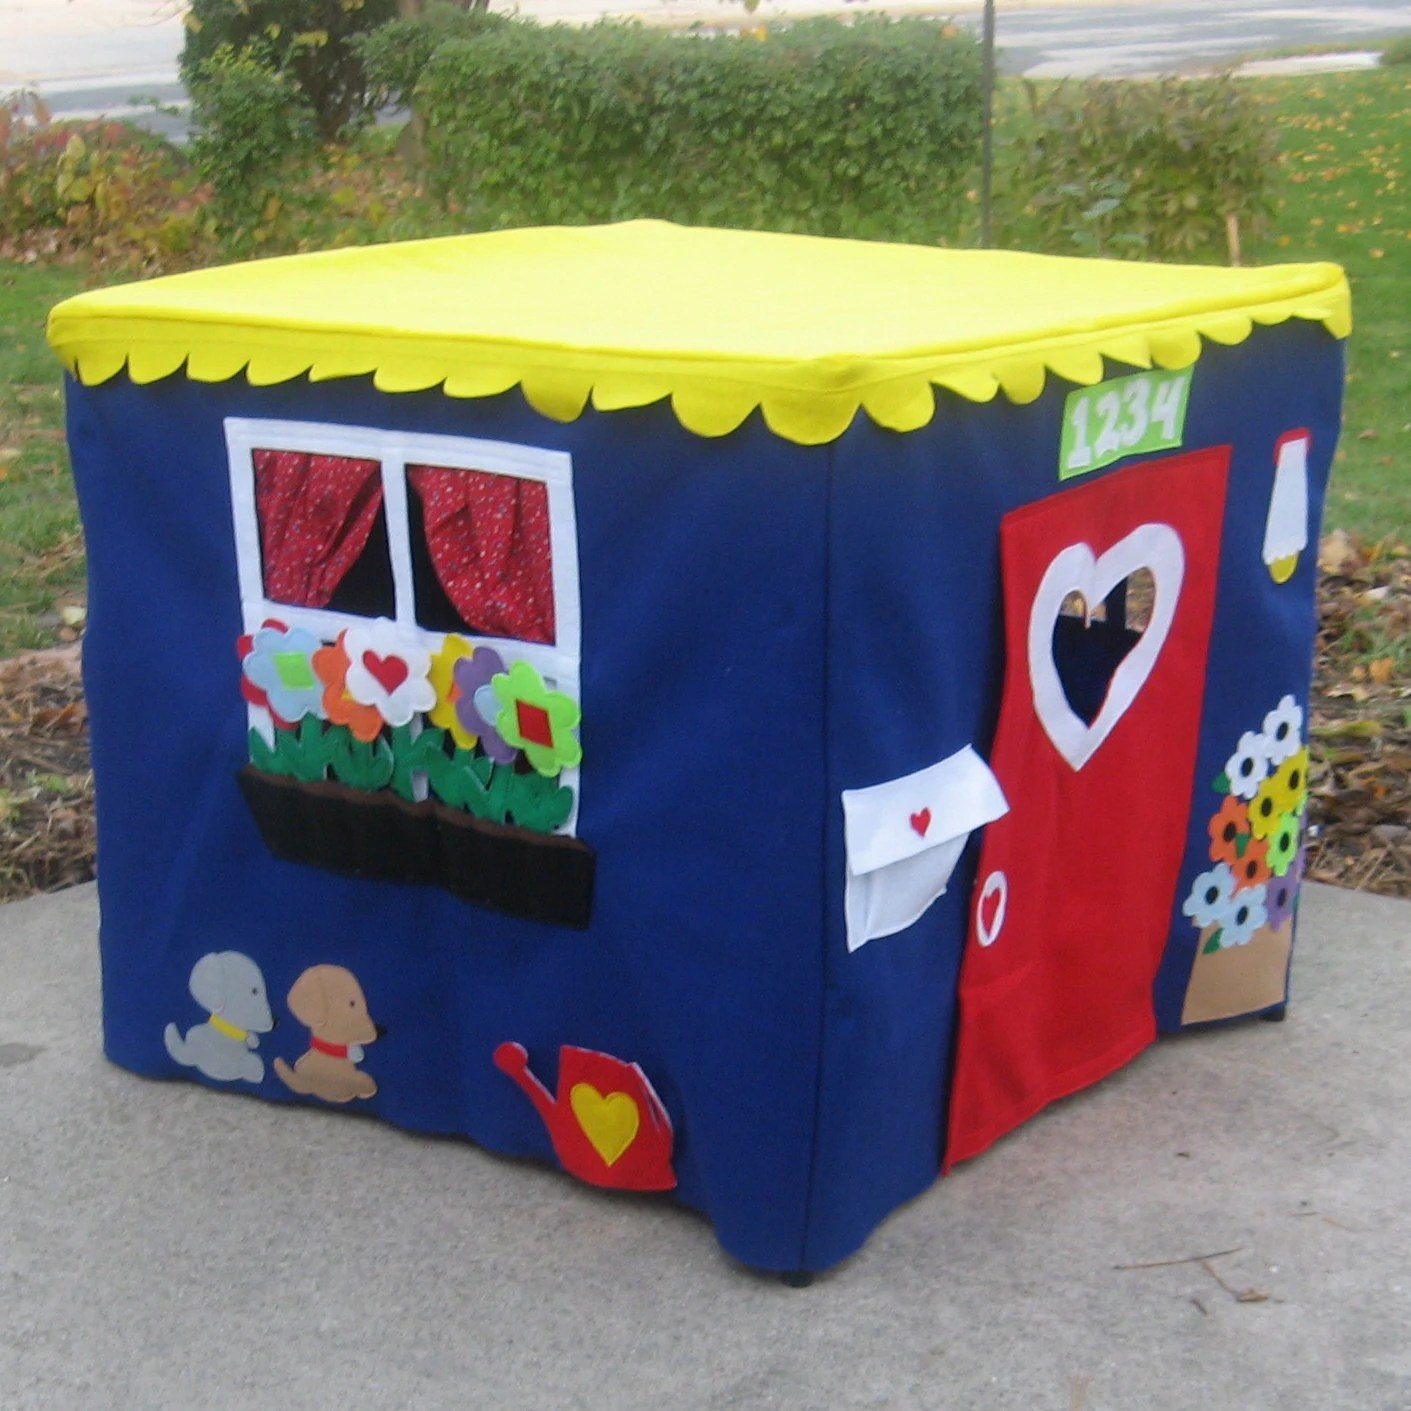 Card Table Playhouse, Royal Blue Double Delight, Pickable Flowers, Custom Order, Personalized